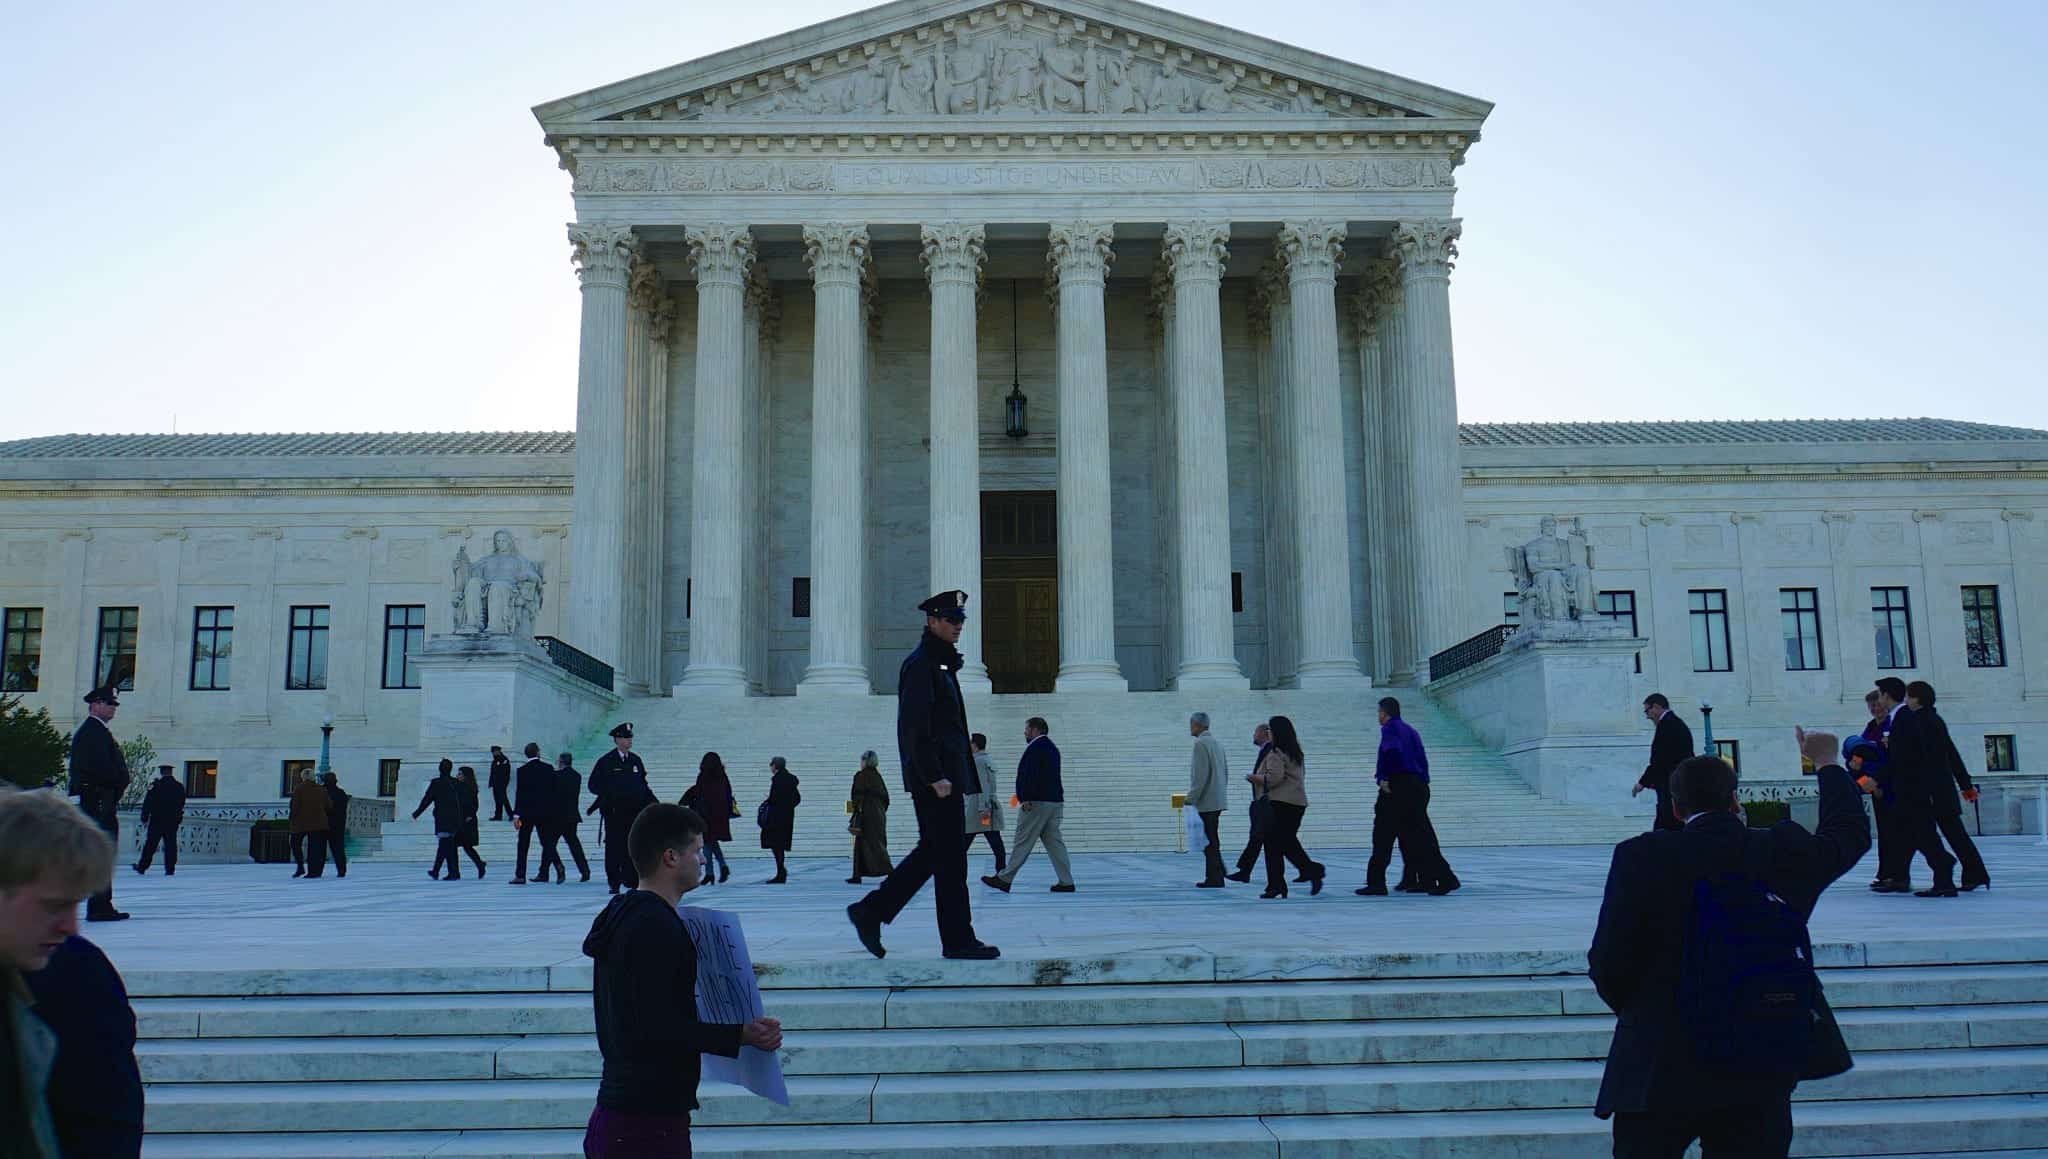 SCOTUS building; image by Ted Eytan, via Flickr, CC BY-SA 2.0, no changes.